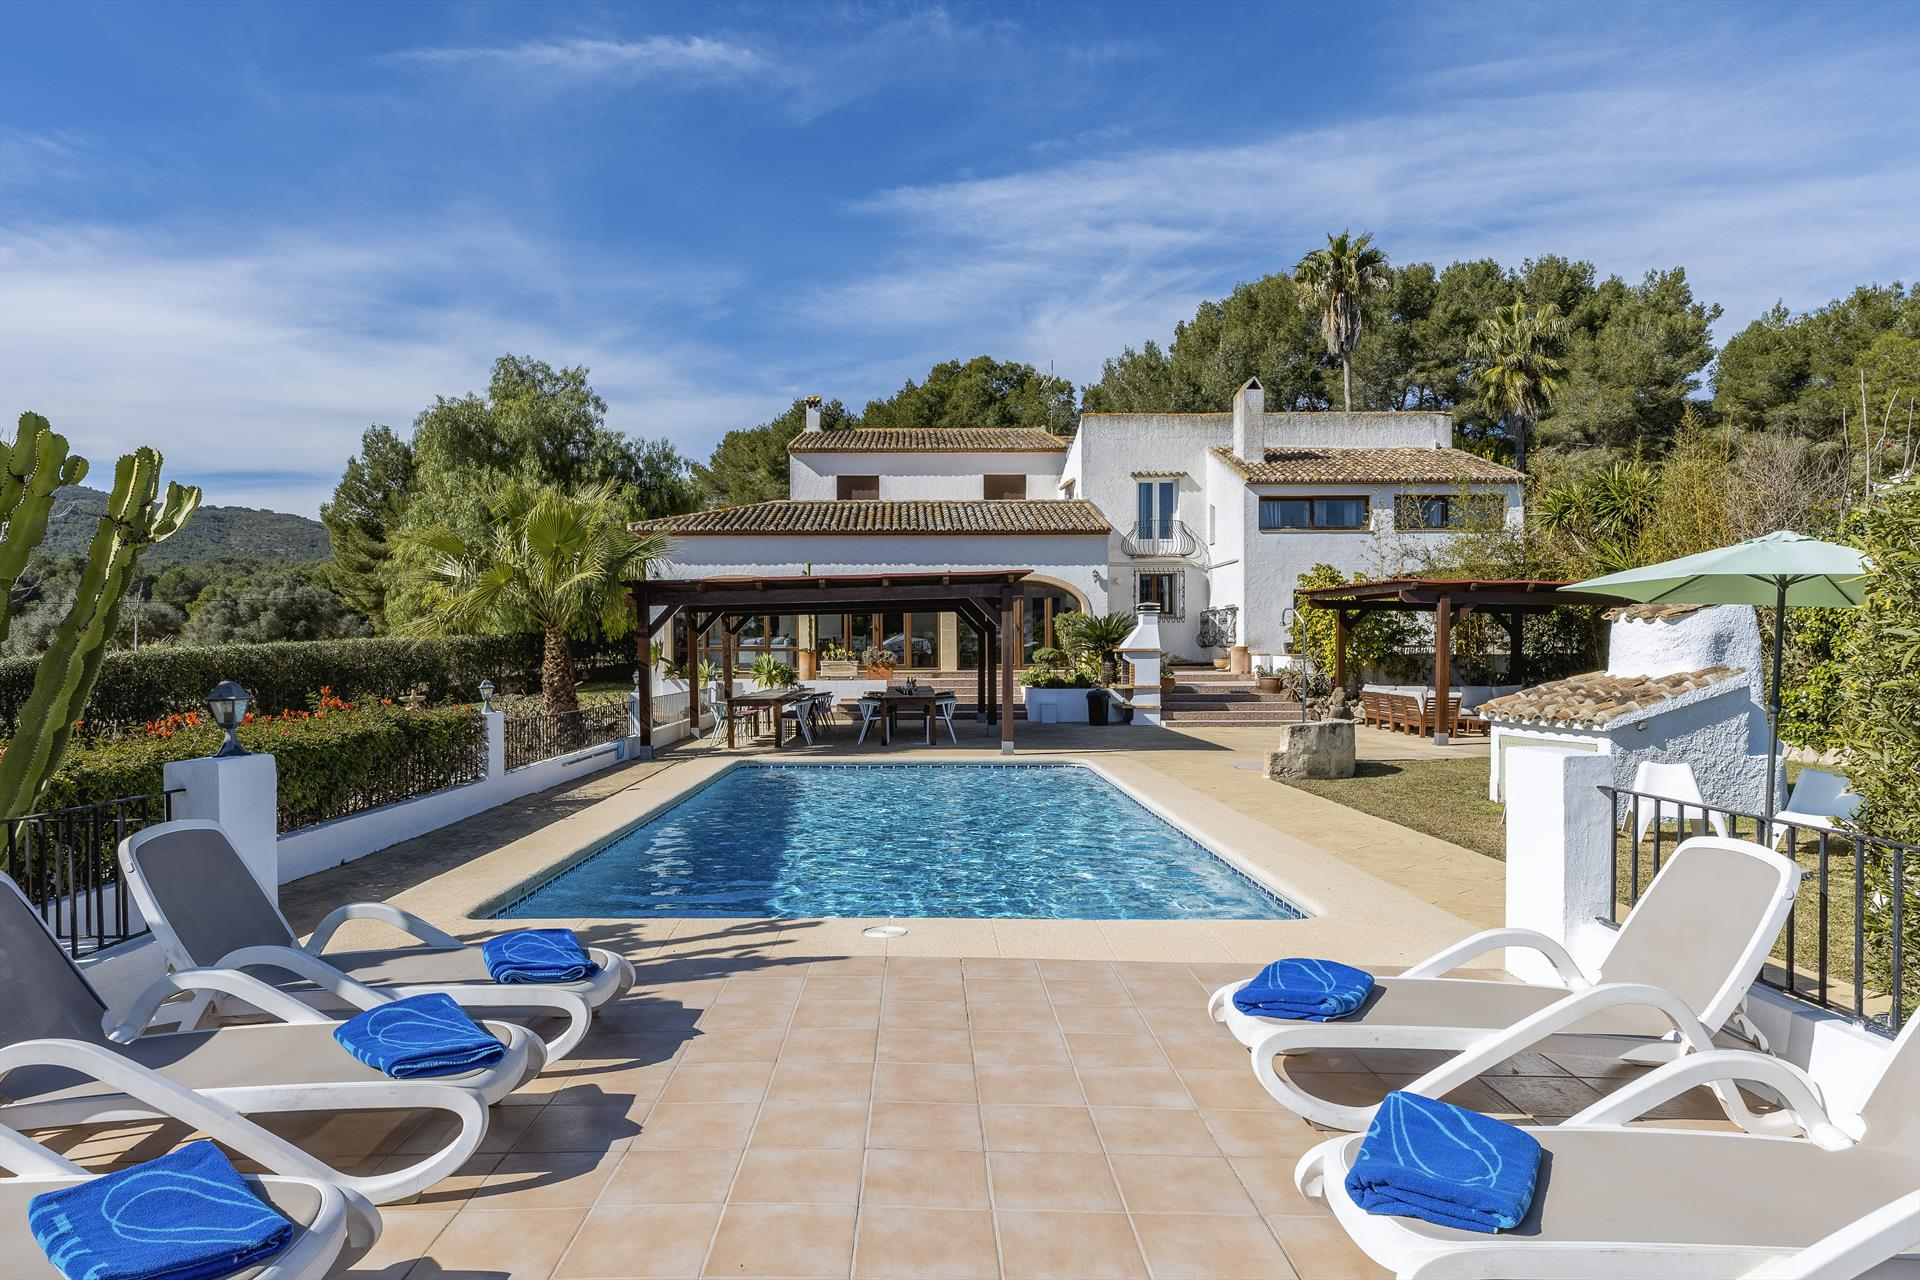 Casa Rosalia 26 pax, Large and comfortable villa  with private pool in Javea, on the Costa Blanca, Spain for 26 persons.....